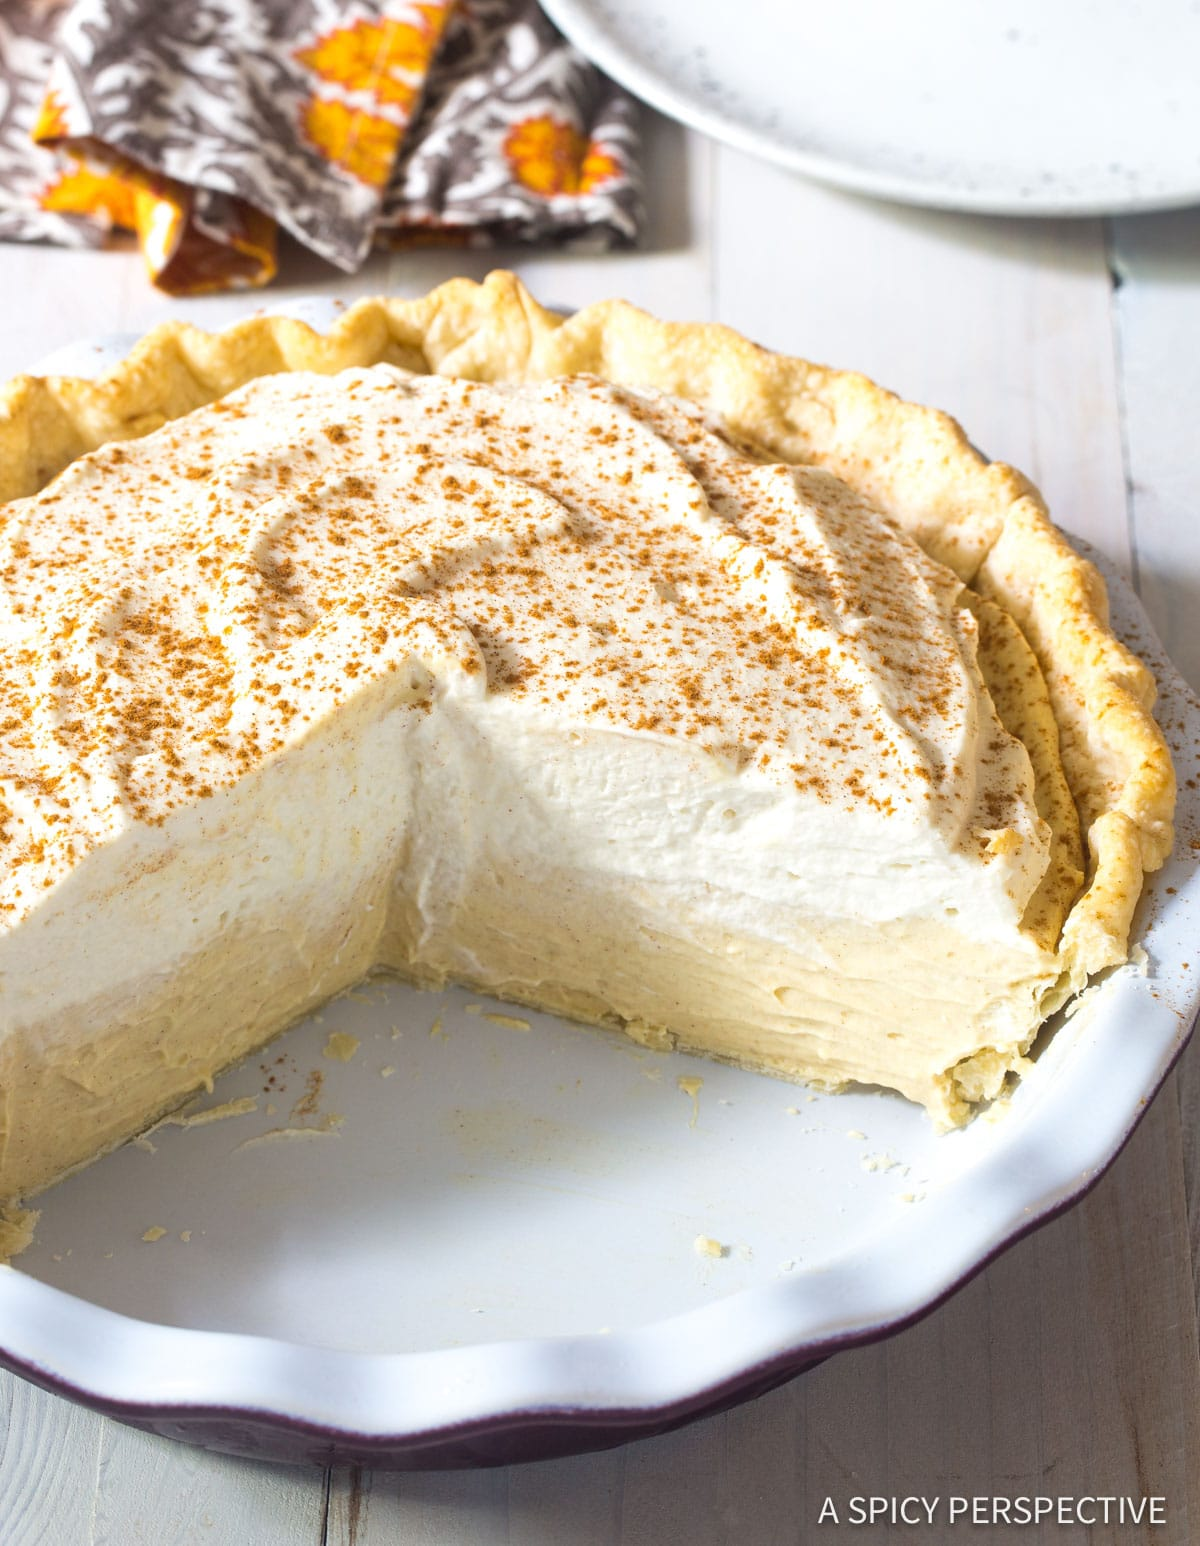 Fluffy Cinnamon Cream Pie with Brown Sugar Whipped Cream Recipe #ASpicyPerspective #Holiday #Thanksgiving